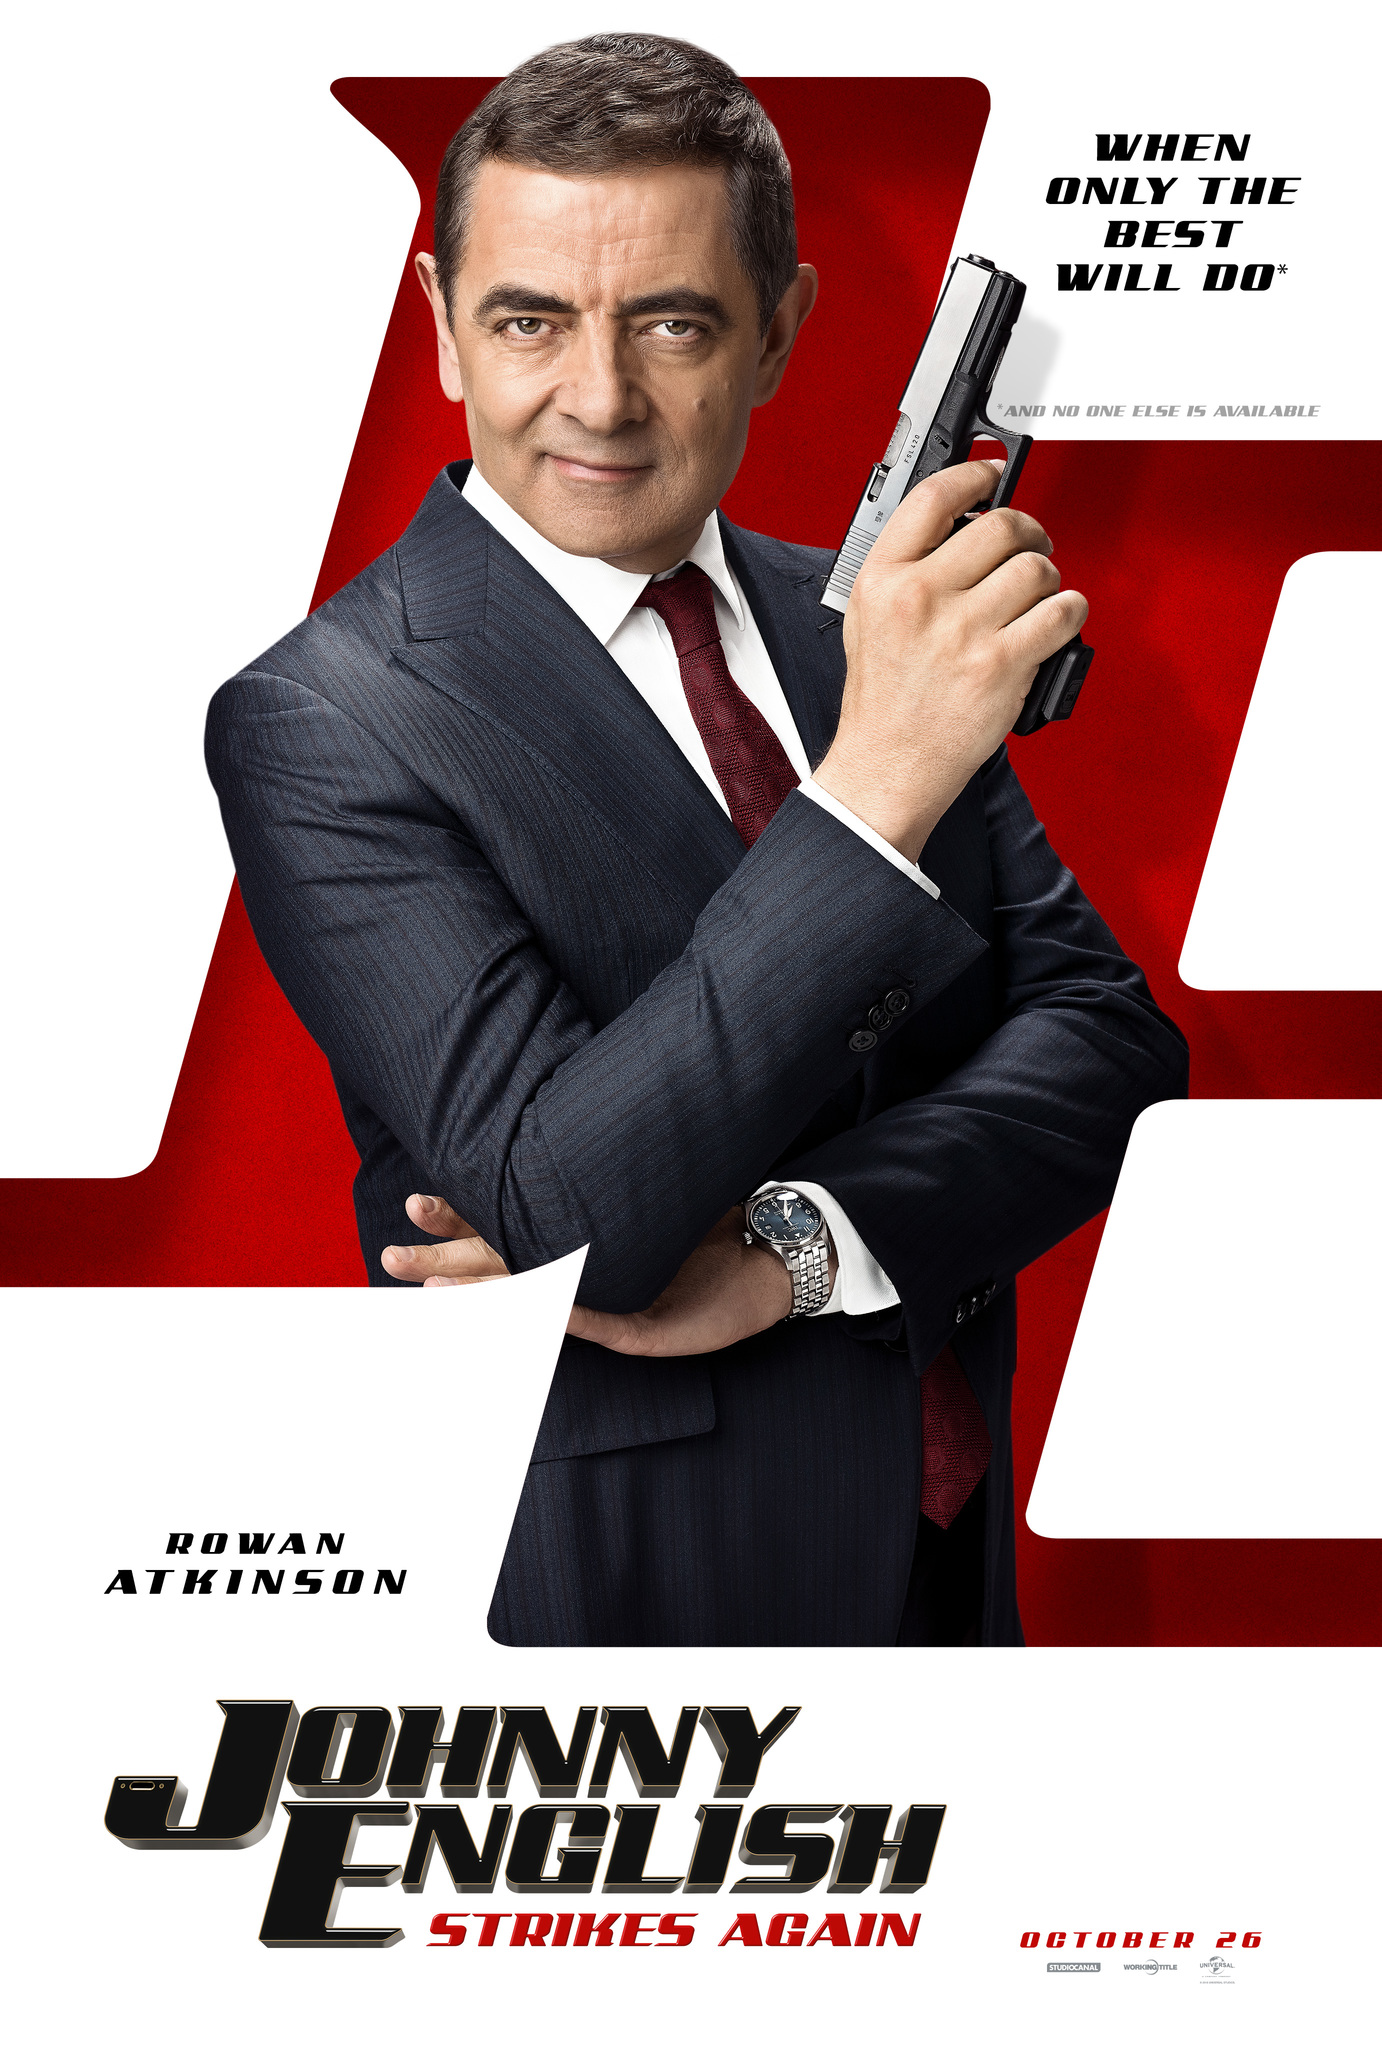 johnny english 1 full movie download 720p